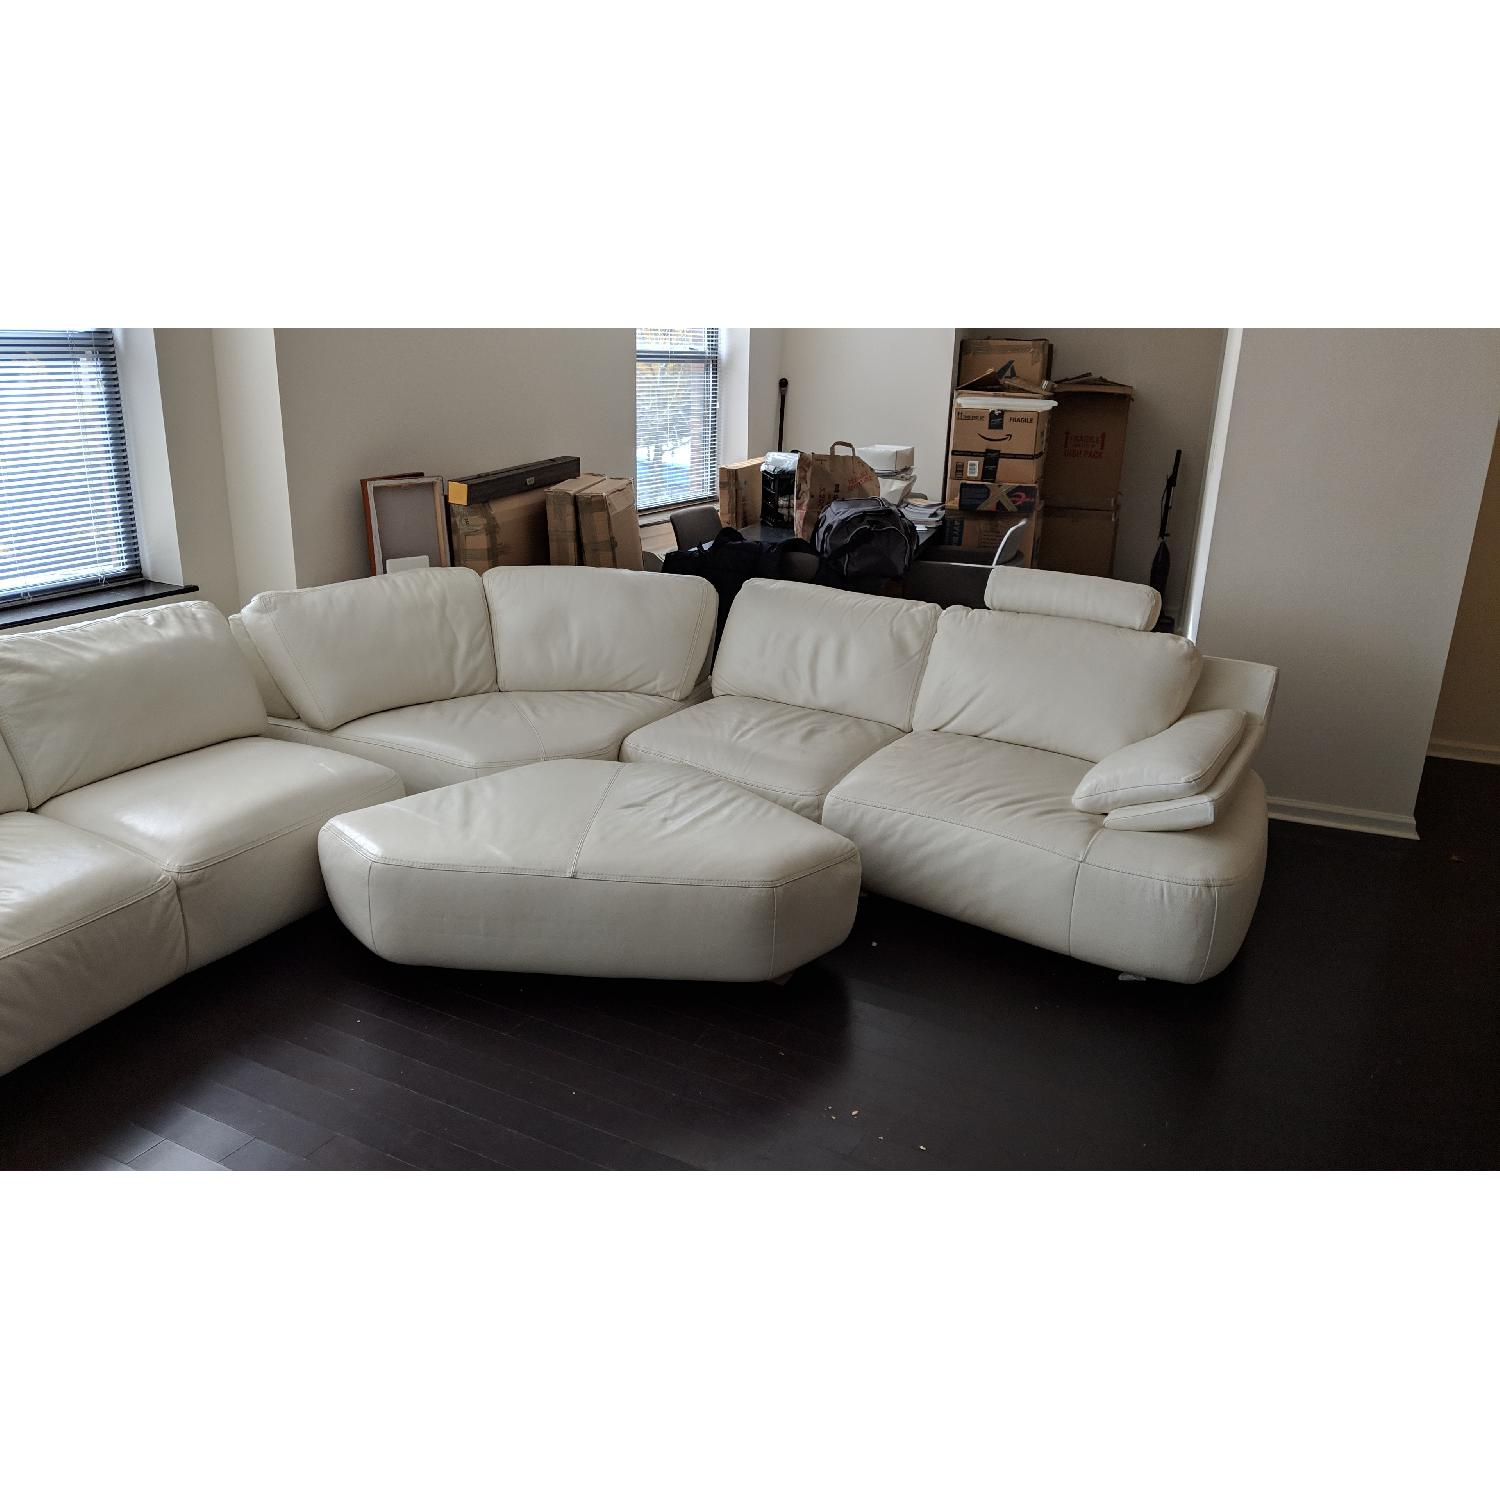 Macy\'s Off White Leather Sectional Sofa & Ottoman - AptDeco